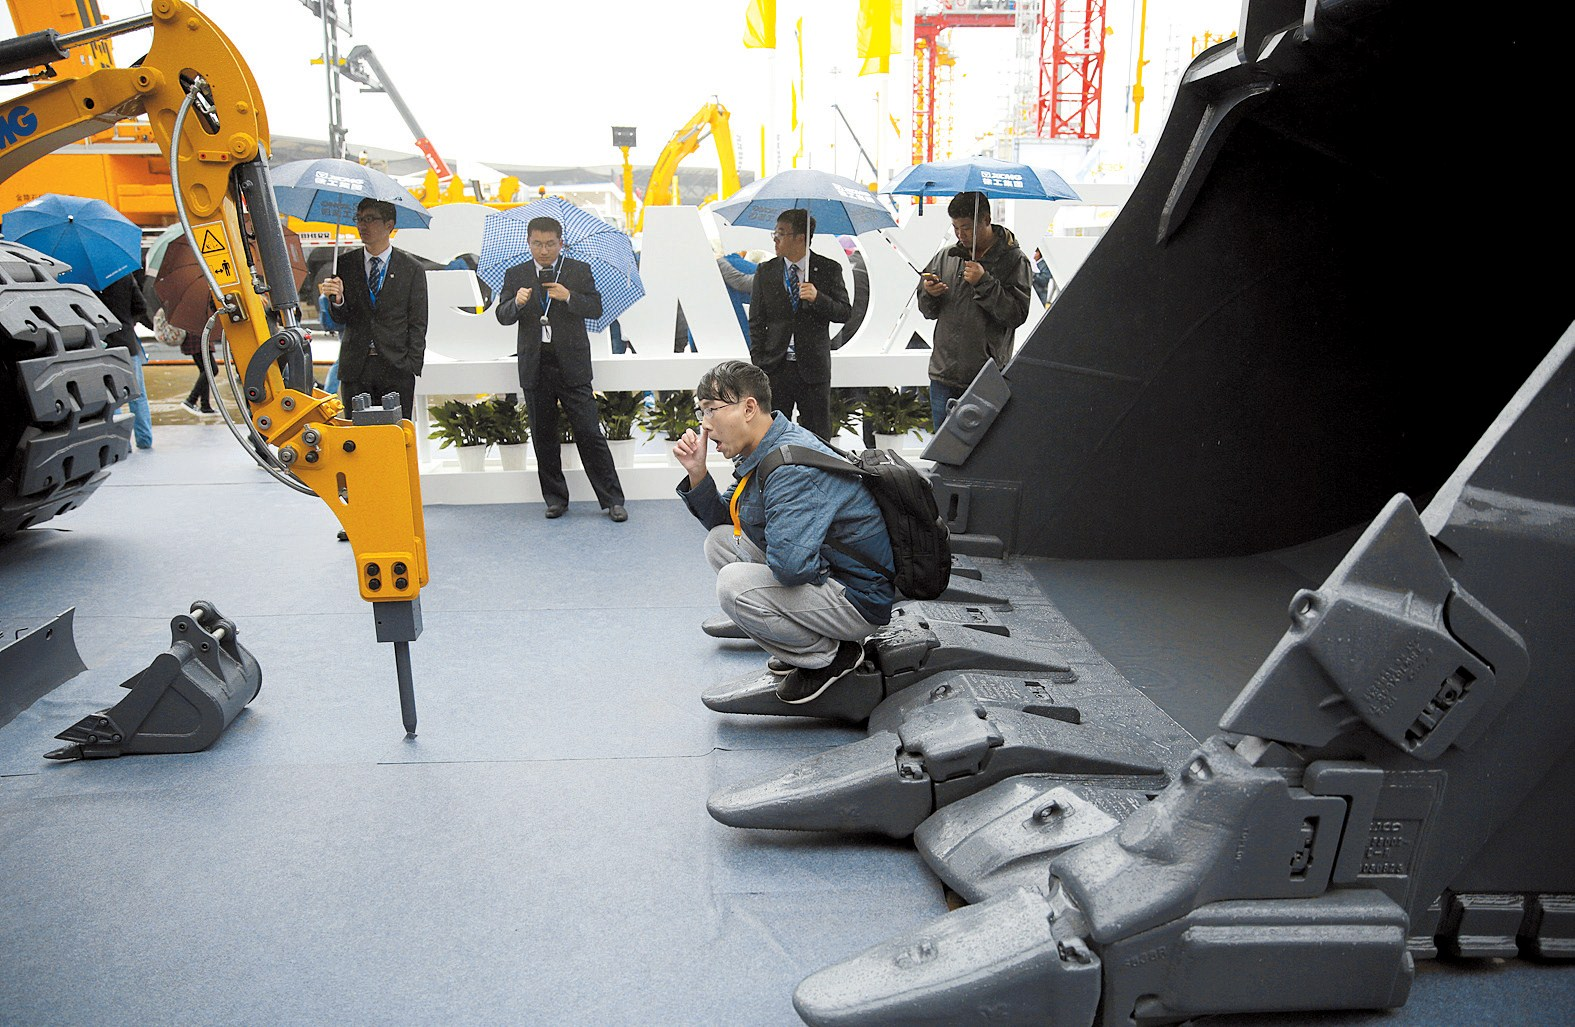 People look at heavy machinery of XCMG at Bauma China 2016, a trade fair for construction machinery held in Shanghai this week. China's push to build a modern day Silk Road is fueling a recovery for the country's heavy equipment industry. — Reuters